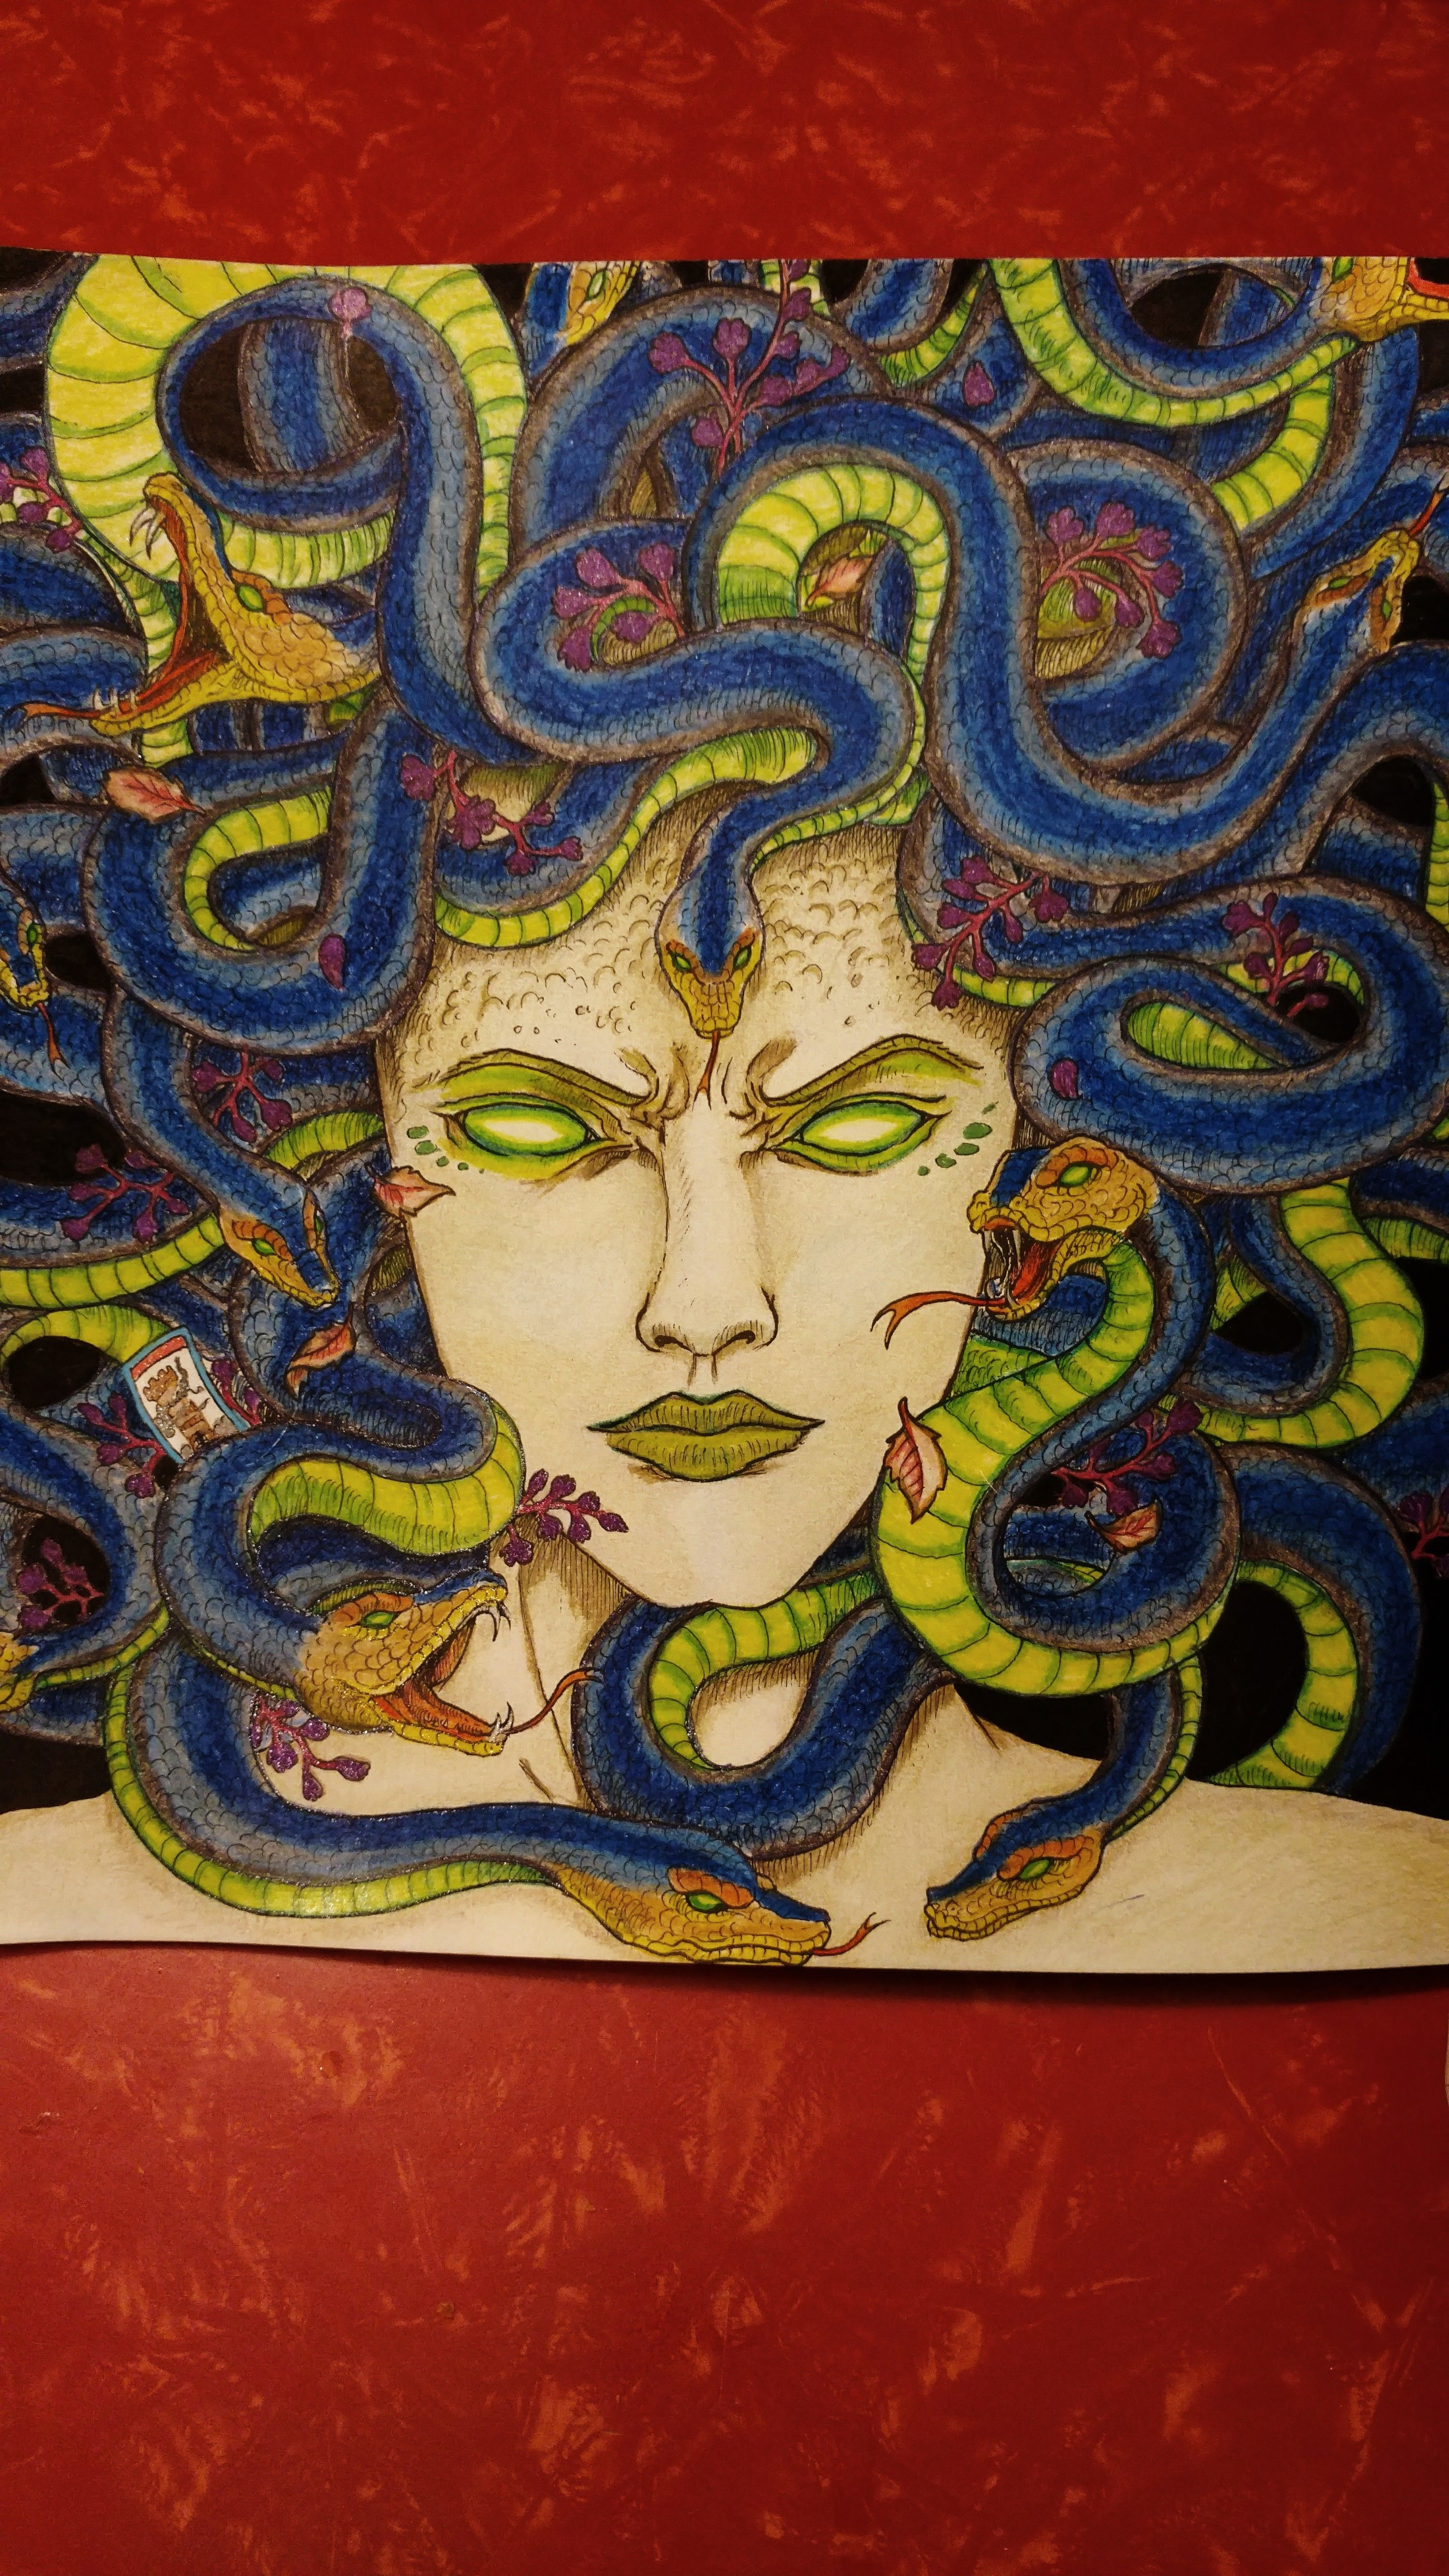 Mythomorphia Medusa Done In Derwent Color Soft Pencils By Mcm Coloring Books Colorful Art Coloring Pages